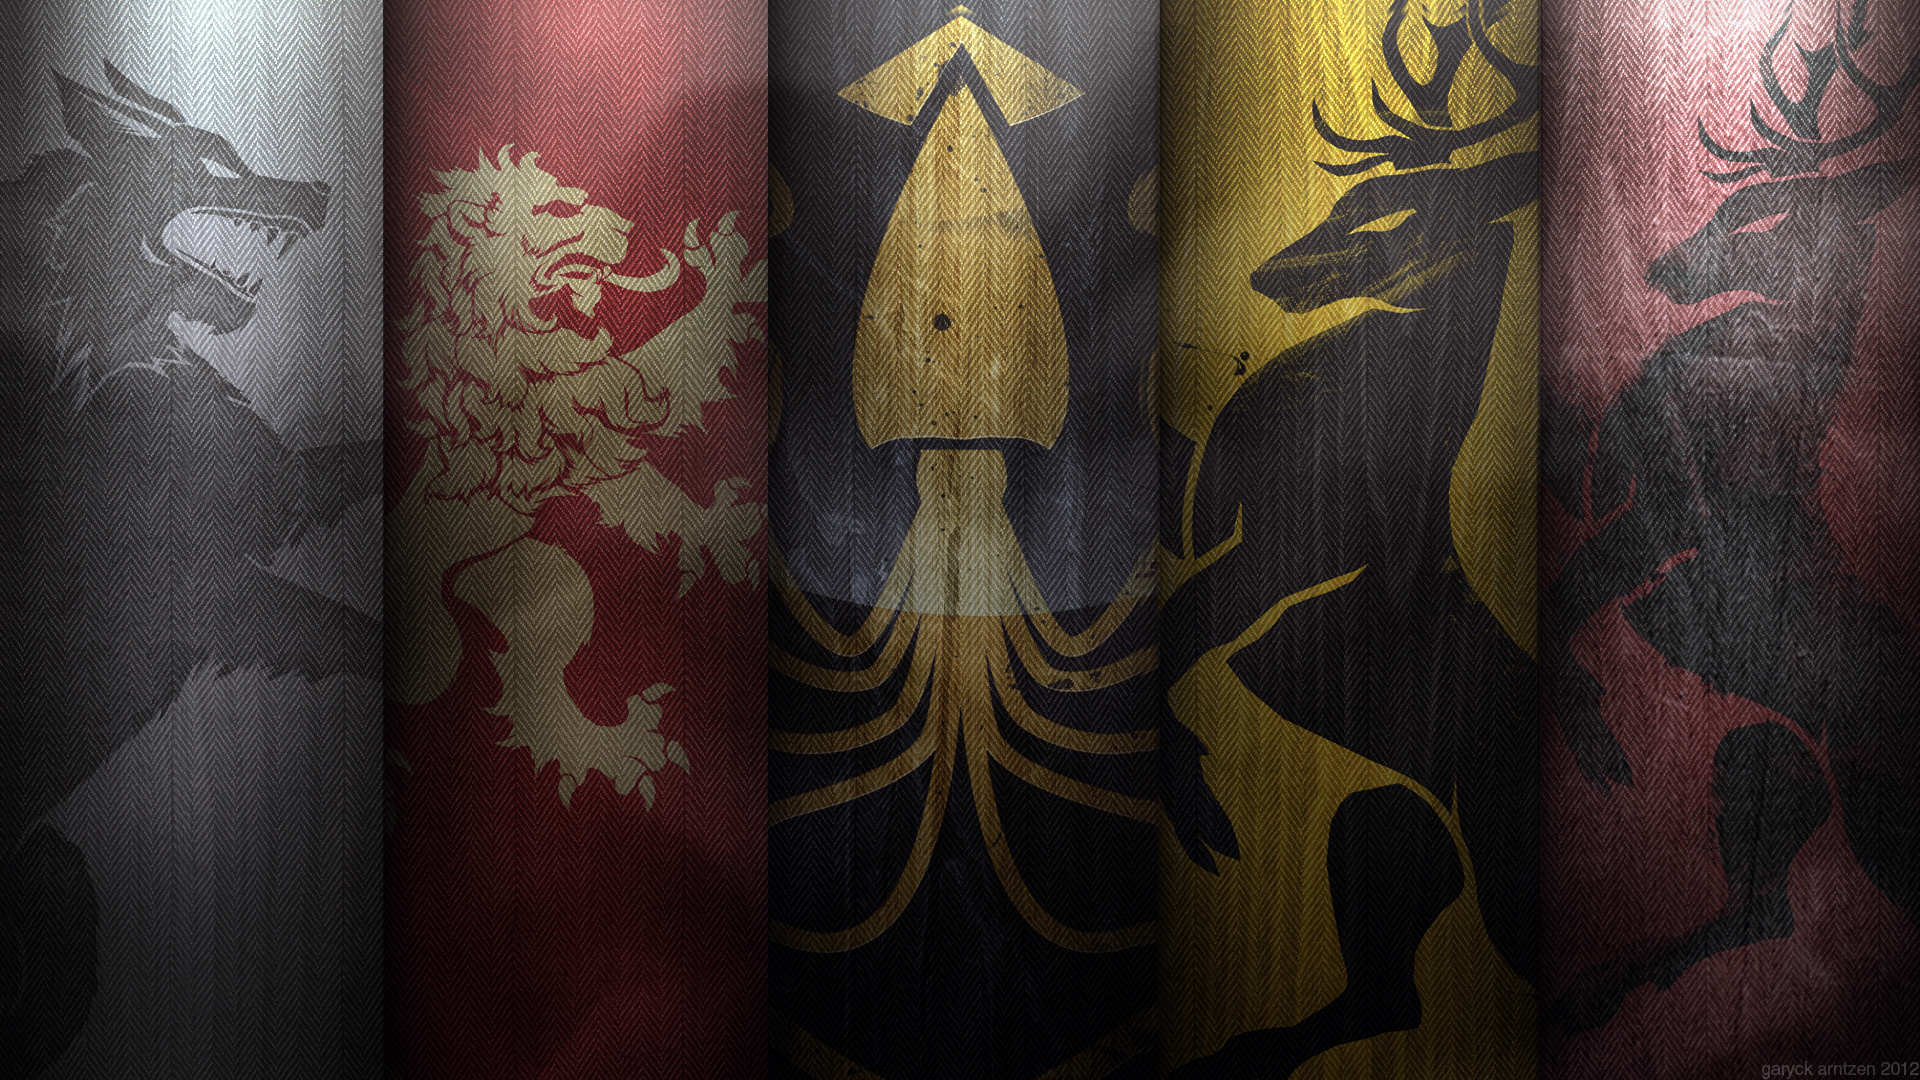 Wallpaper Game of Thrones Image 1920x1080